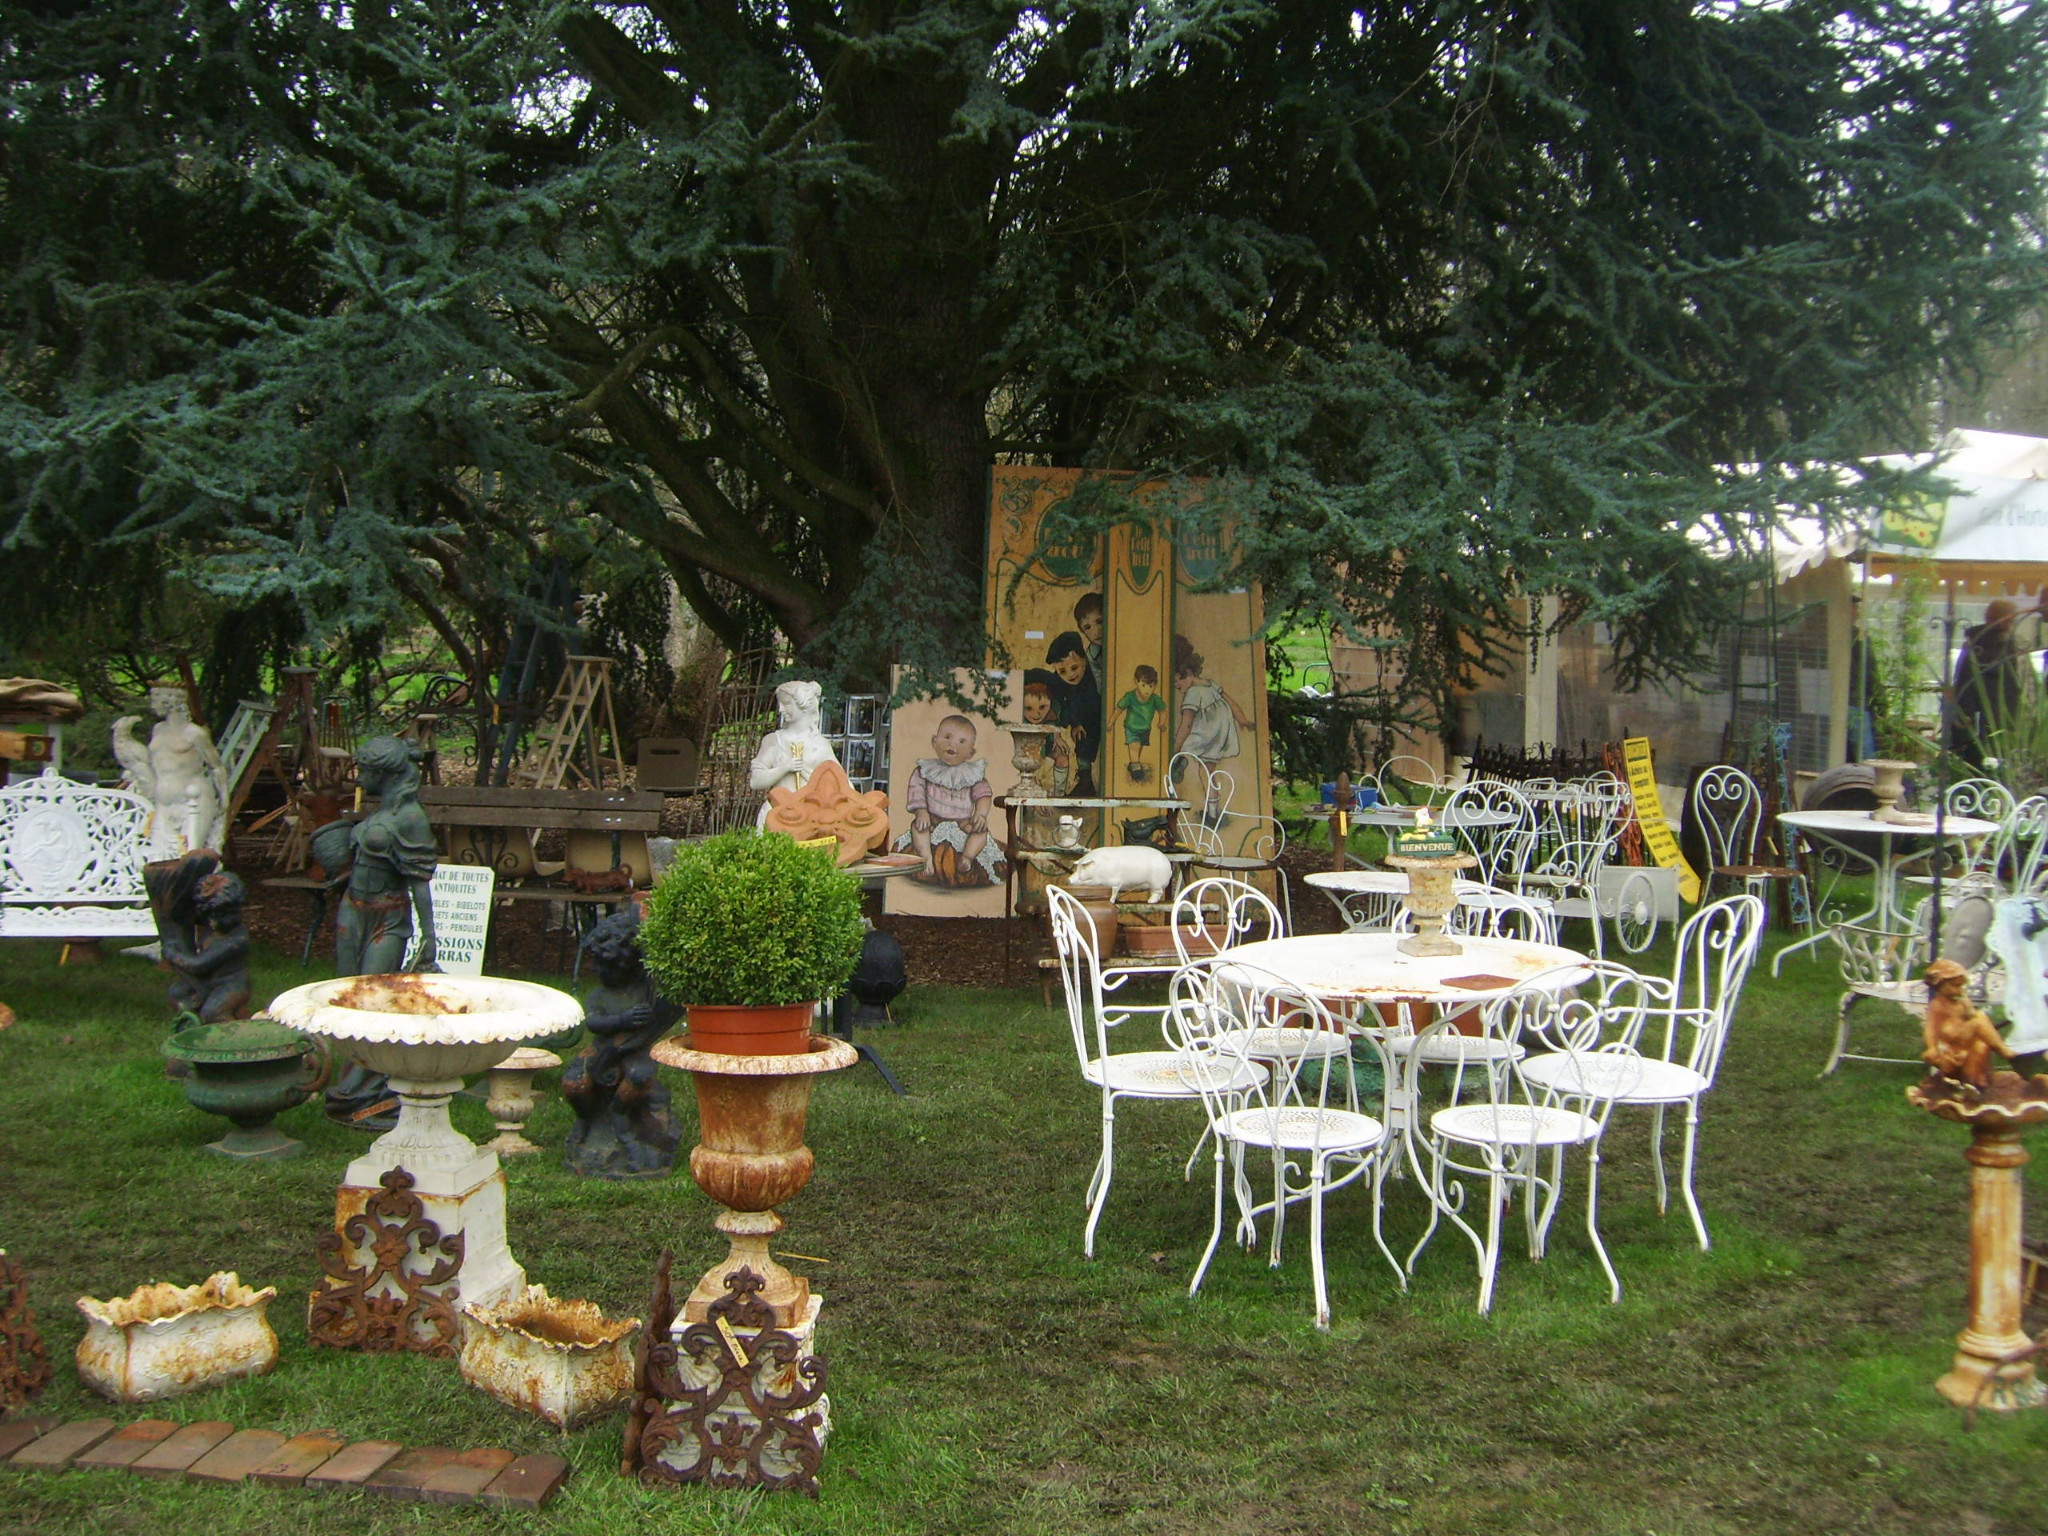 nibelle et baudouin escapade au salon des arts du jardin. Black Bedroom Furniture Sets. Home Design Ideas